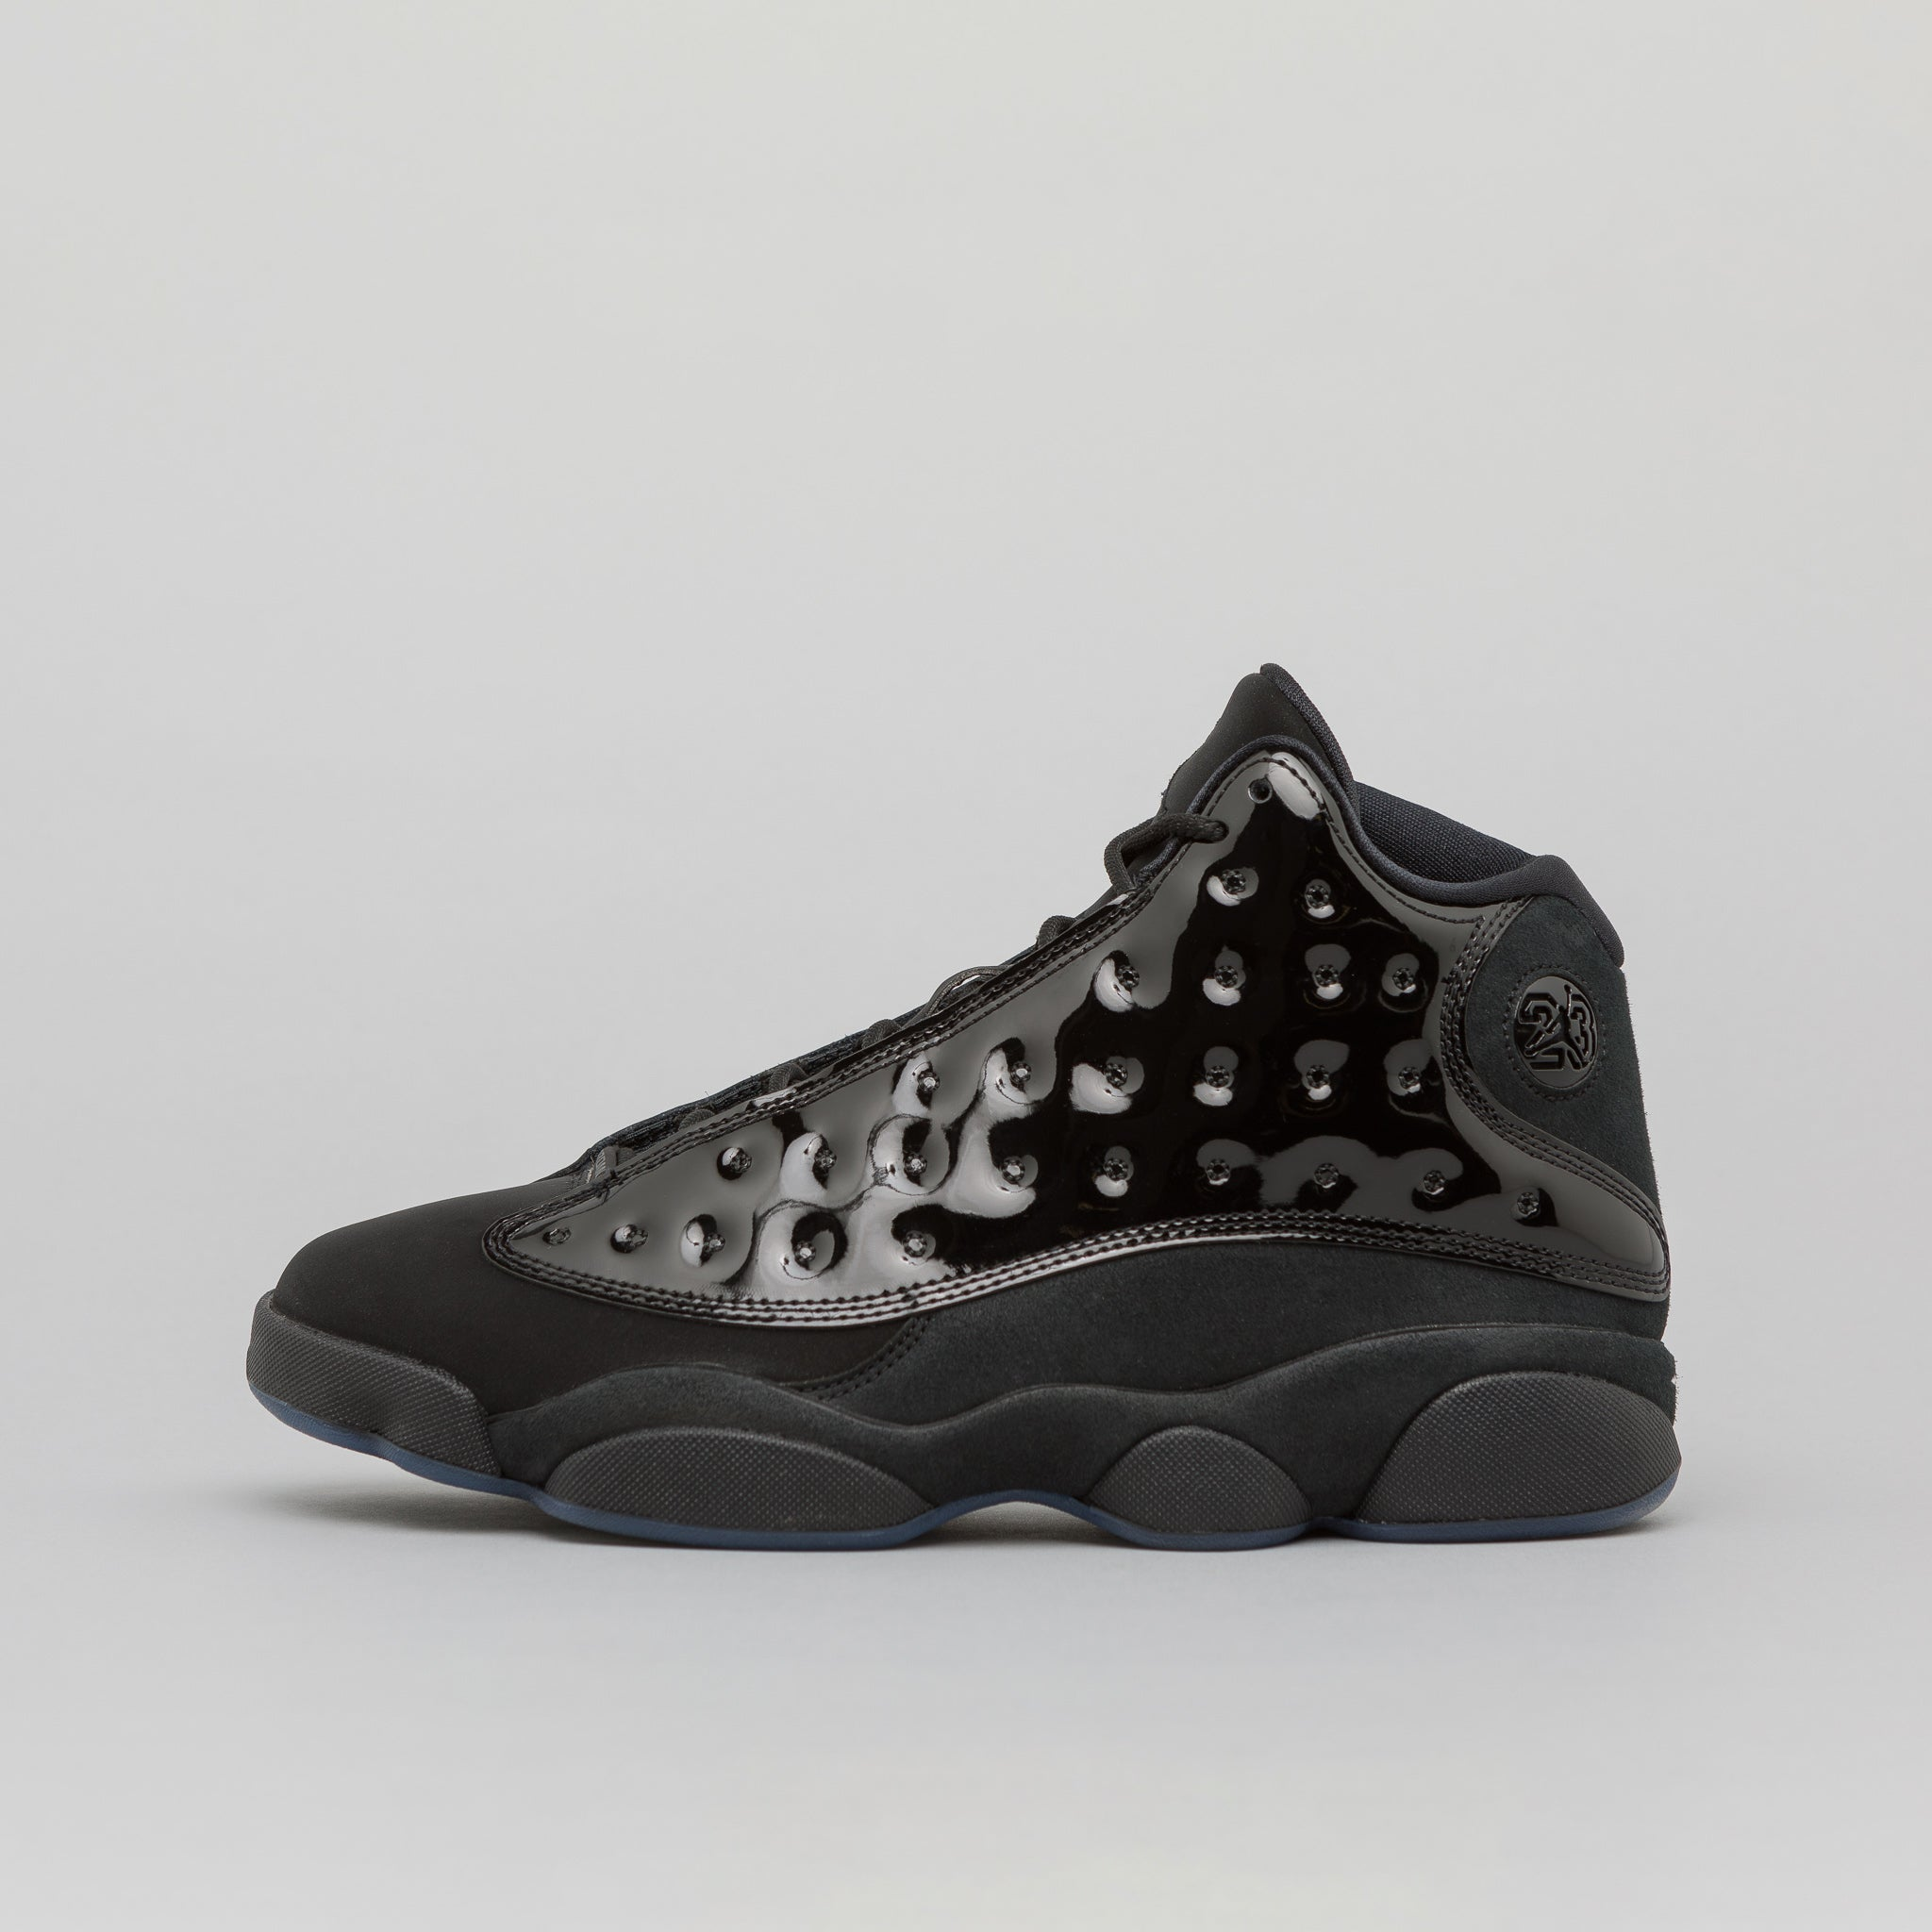 db68fa8fa61e Jordan Air Jordan 13 Retro in Black Black